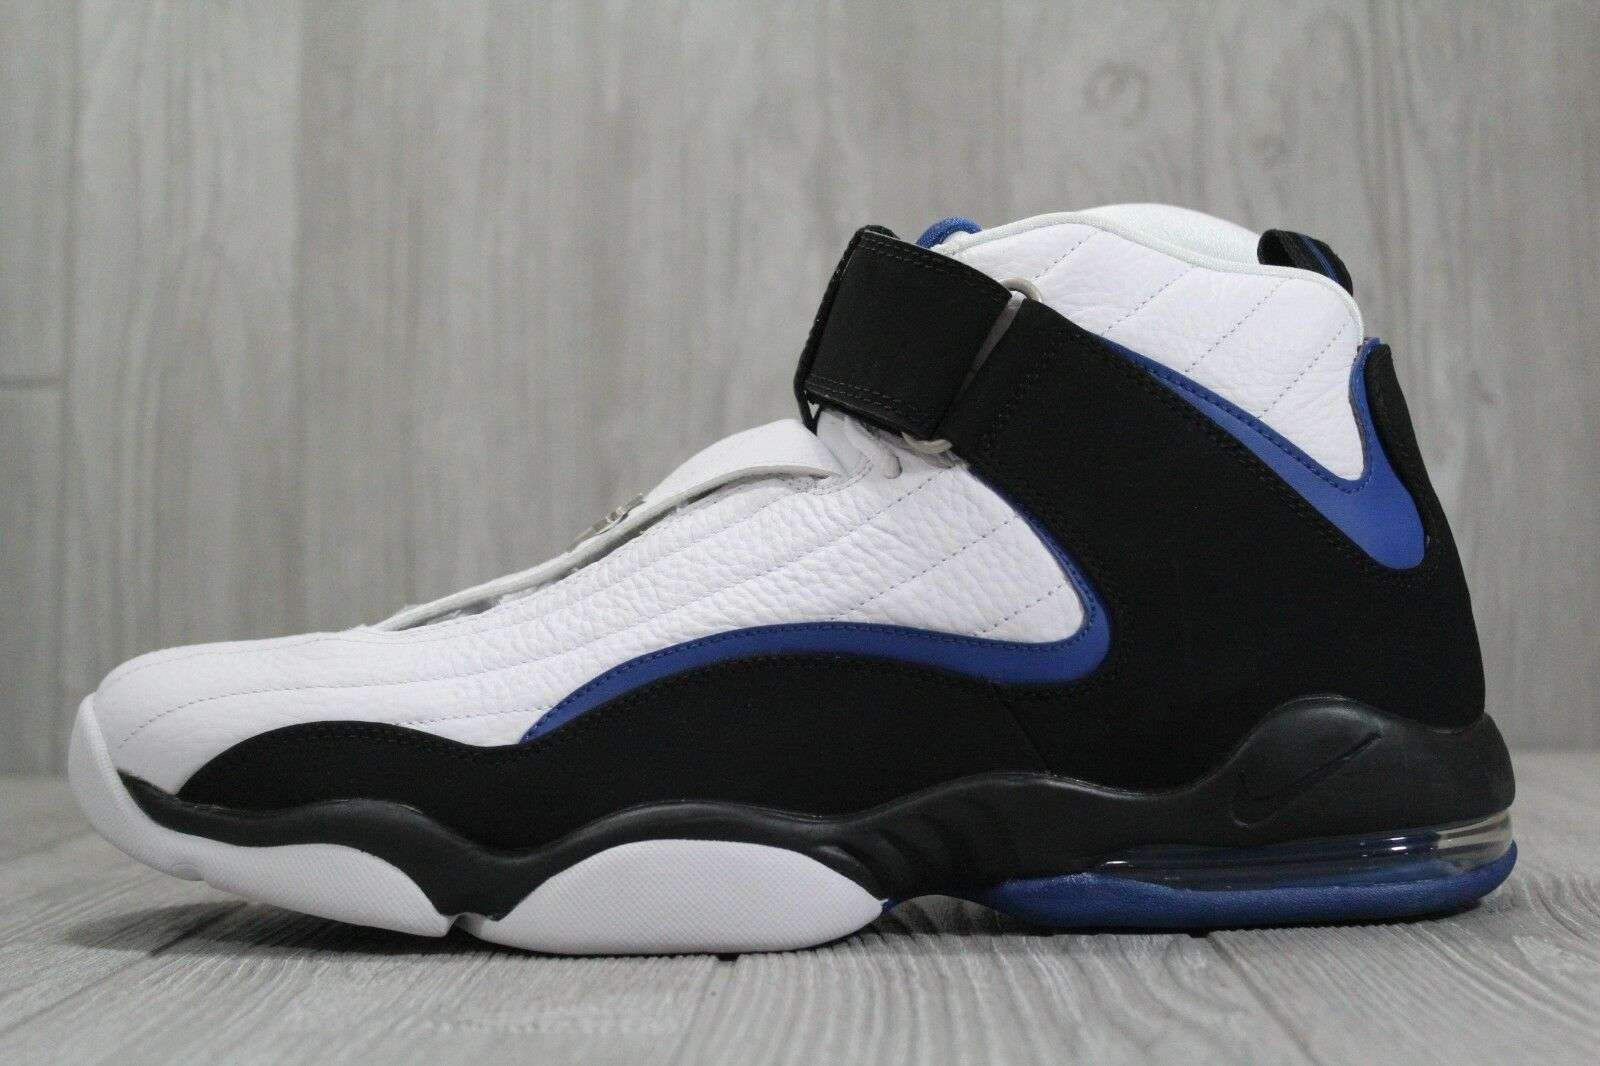 35 Nike Air Penny IV 864018-100 Orlando Home Black Atlantic bluee White shoes 14